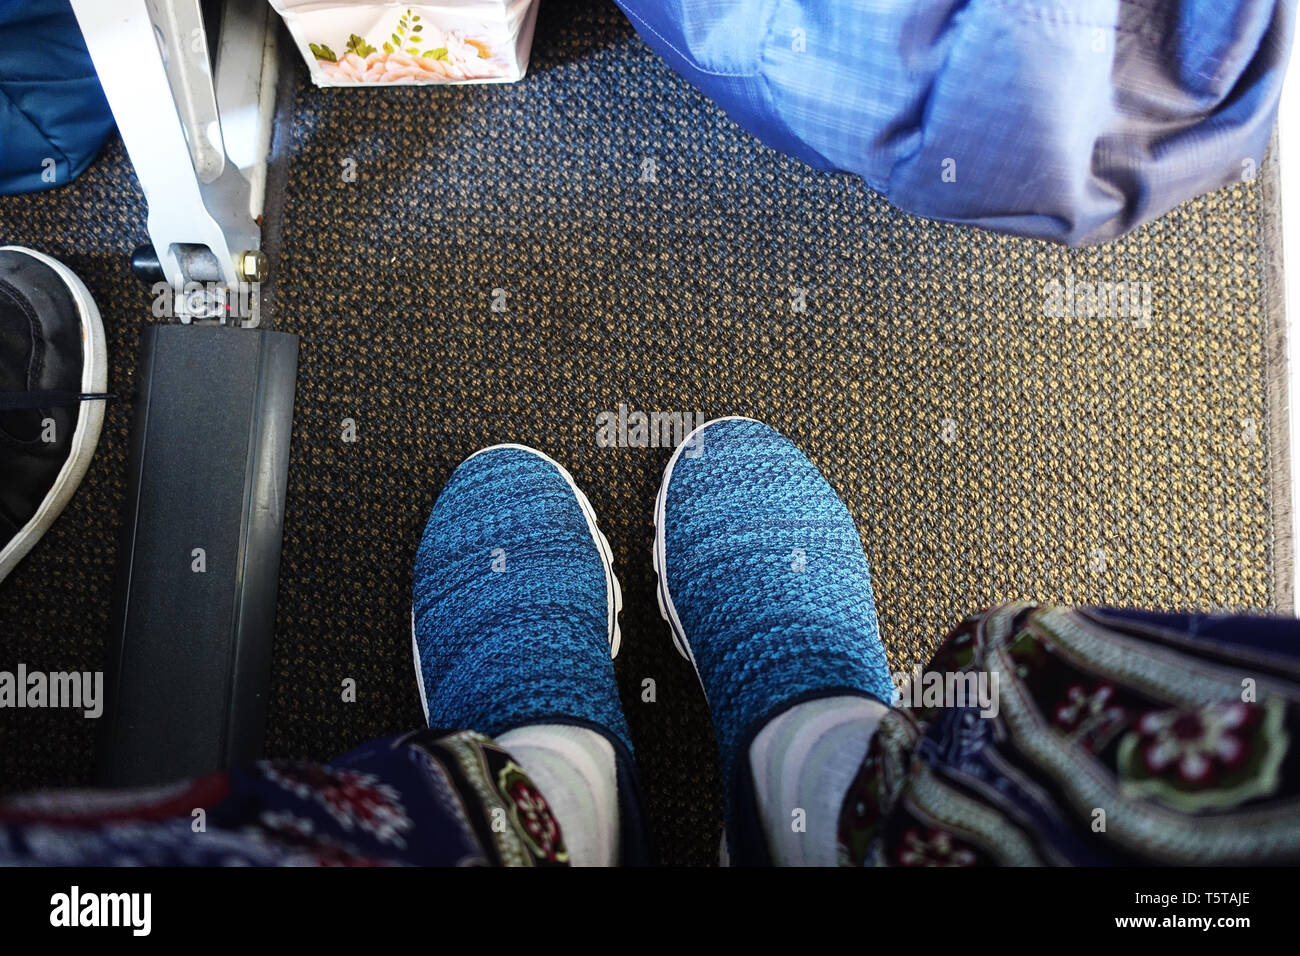 View of the legroom in economy class cabin - Stock Image